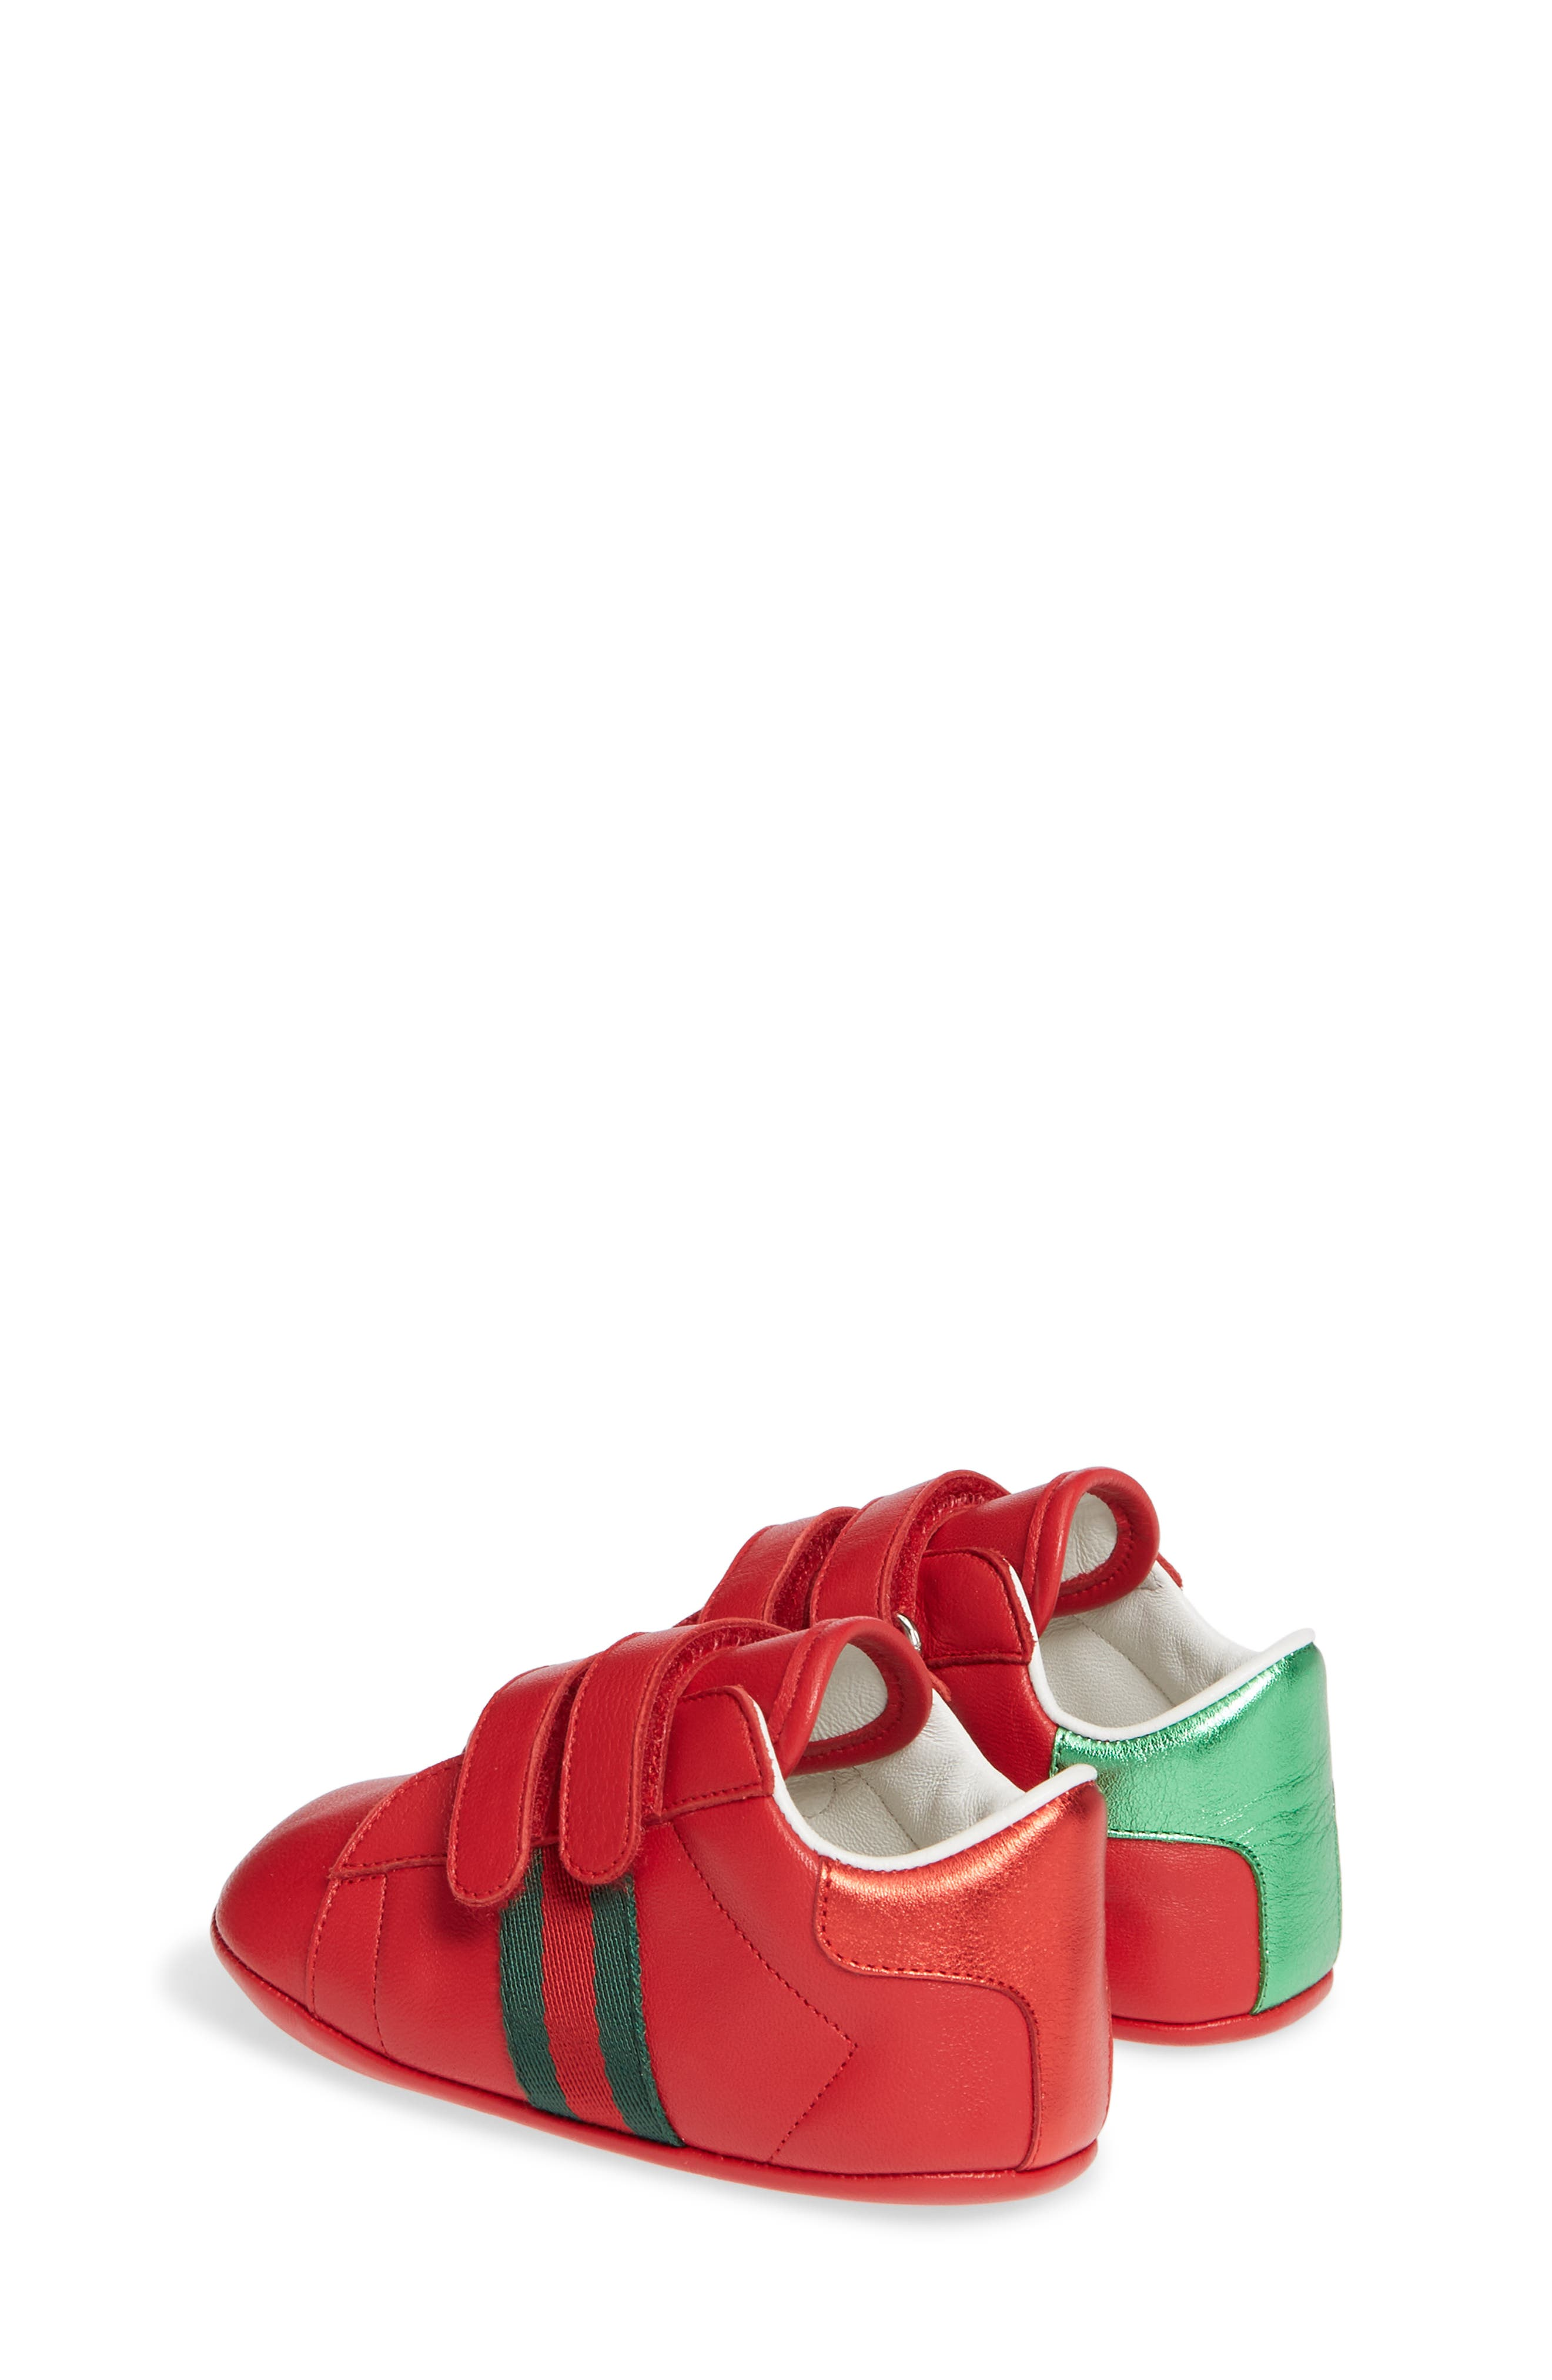 Ace Crib Shoe,                             Alternate thumbnail 3, color,                             RED